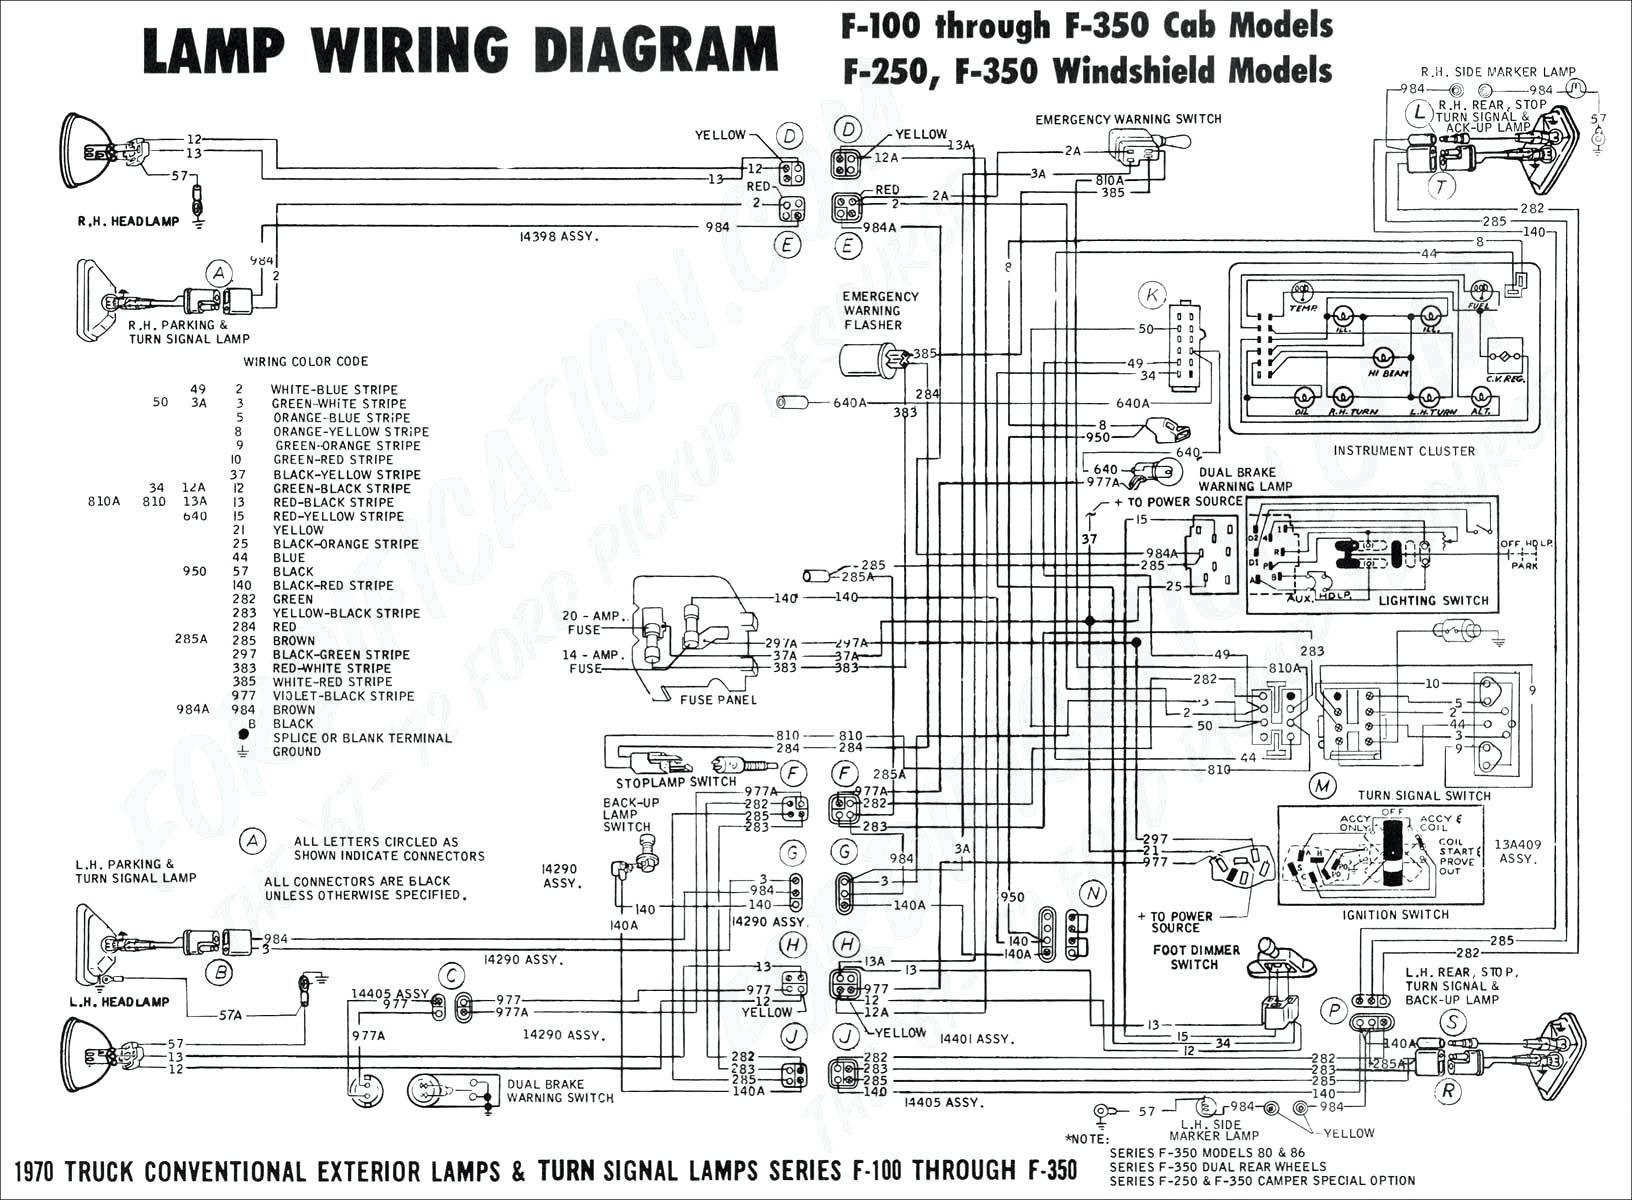 95 gmc jimmy transmission fuse wiring wiring diagram paper2004 trailblazer fuse box wiring diagram toolbox 95